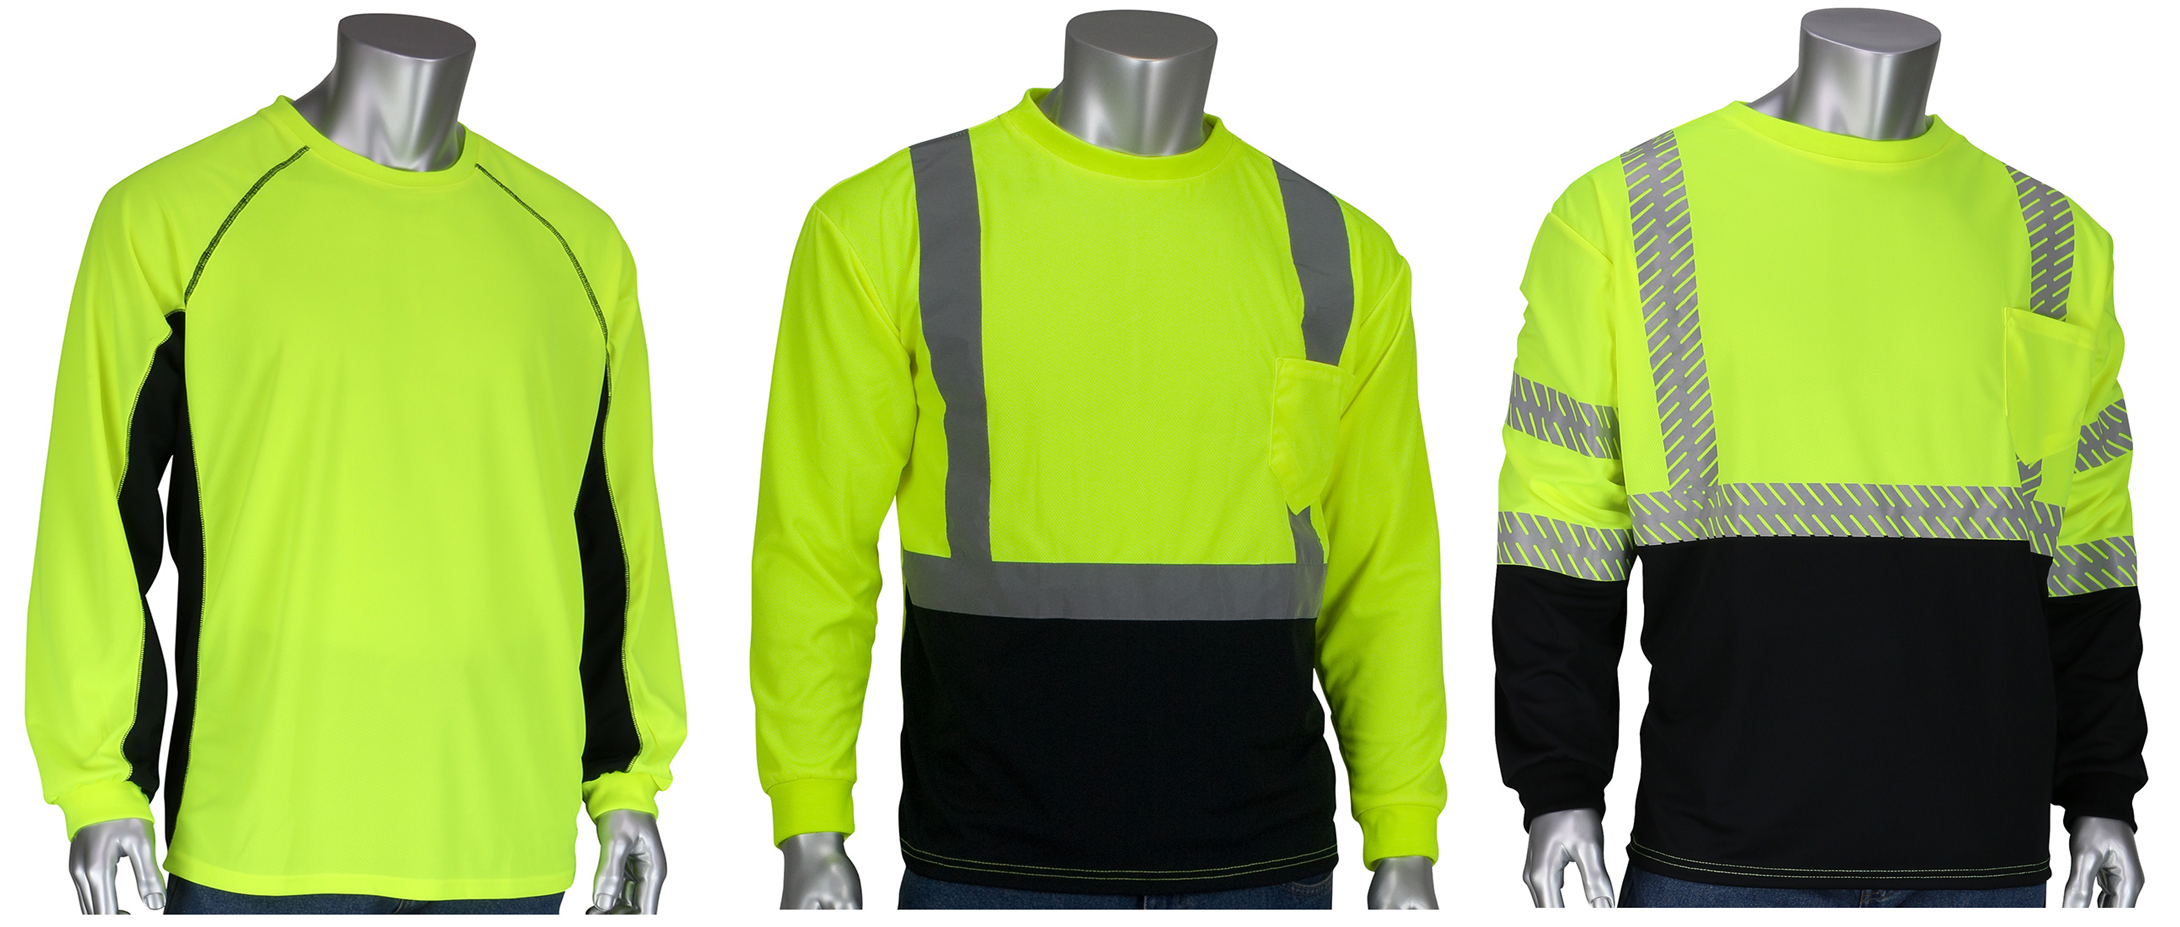 Hi-Viz Sun Blocking T-Shirts with Built-In Insect Repellent